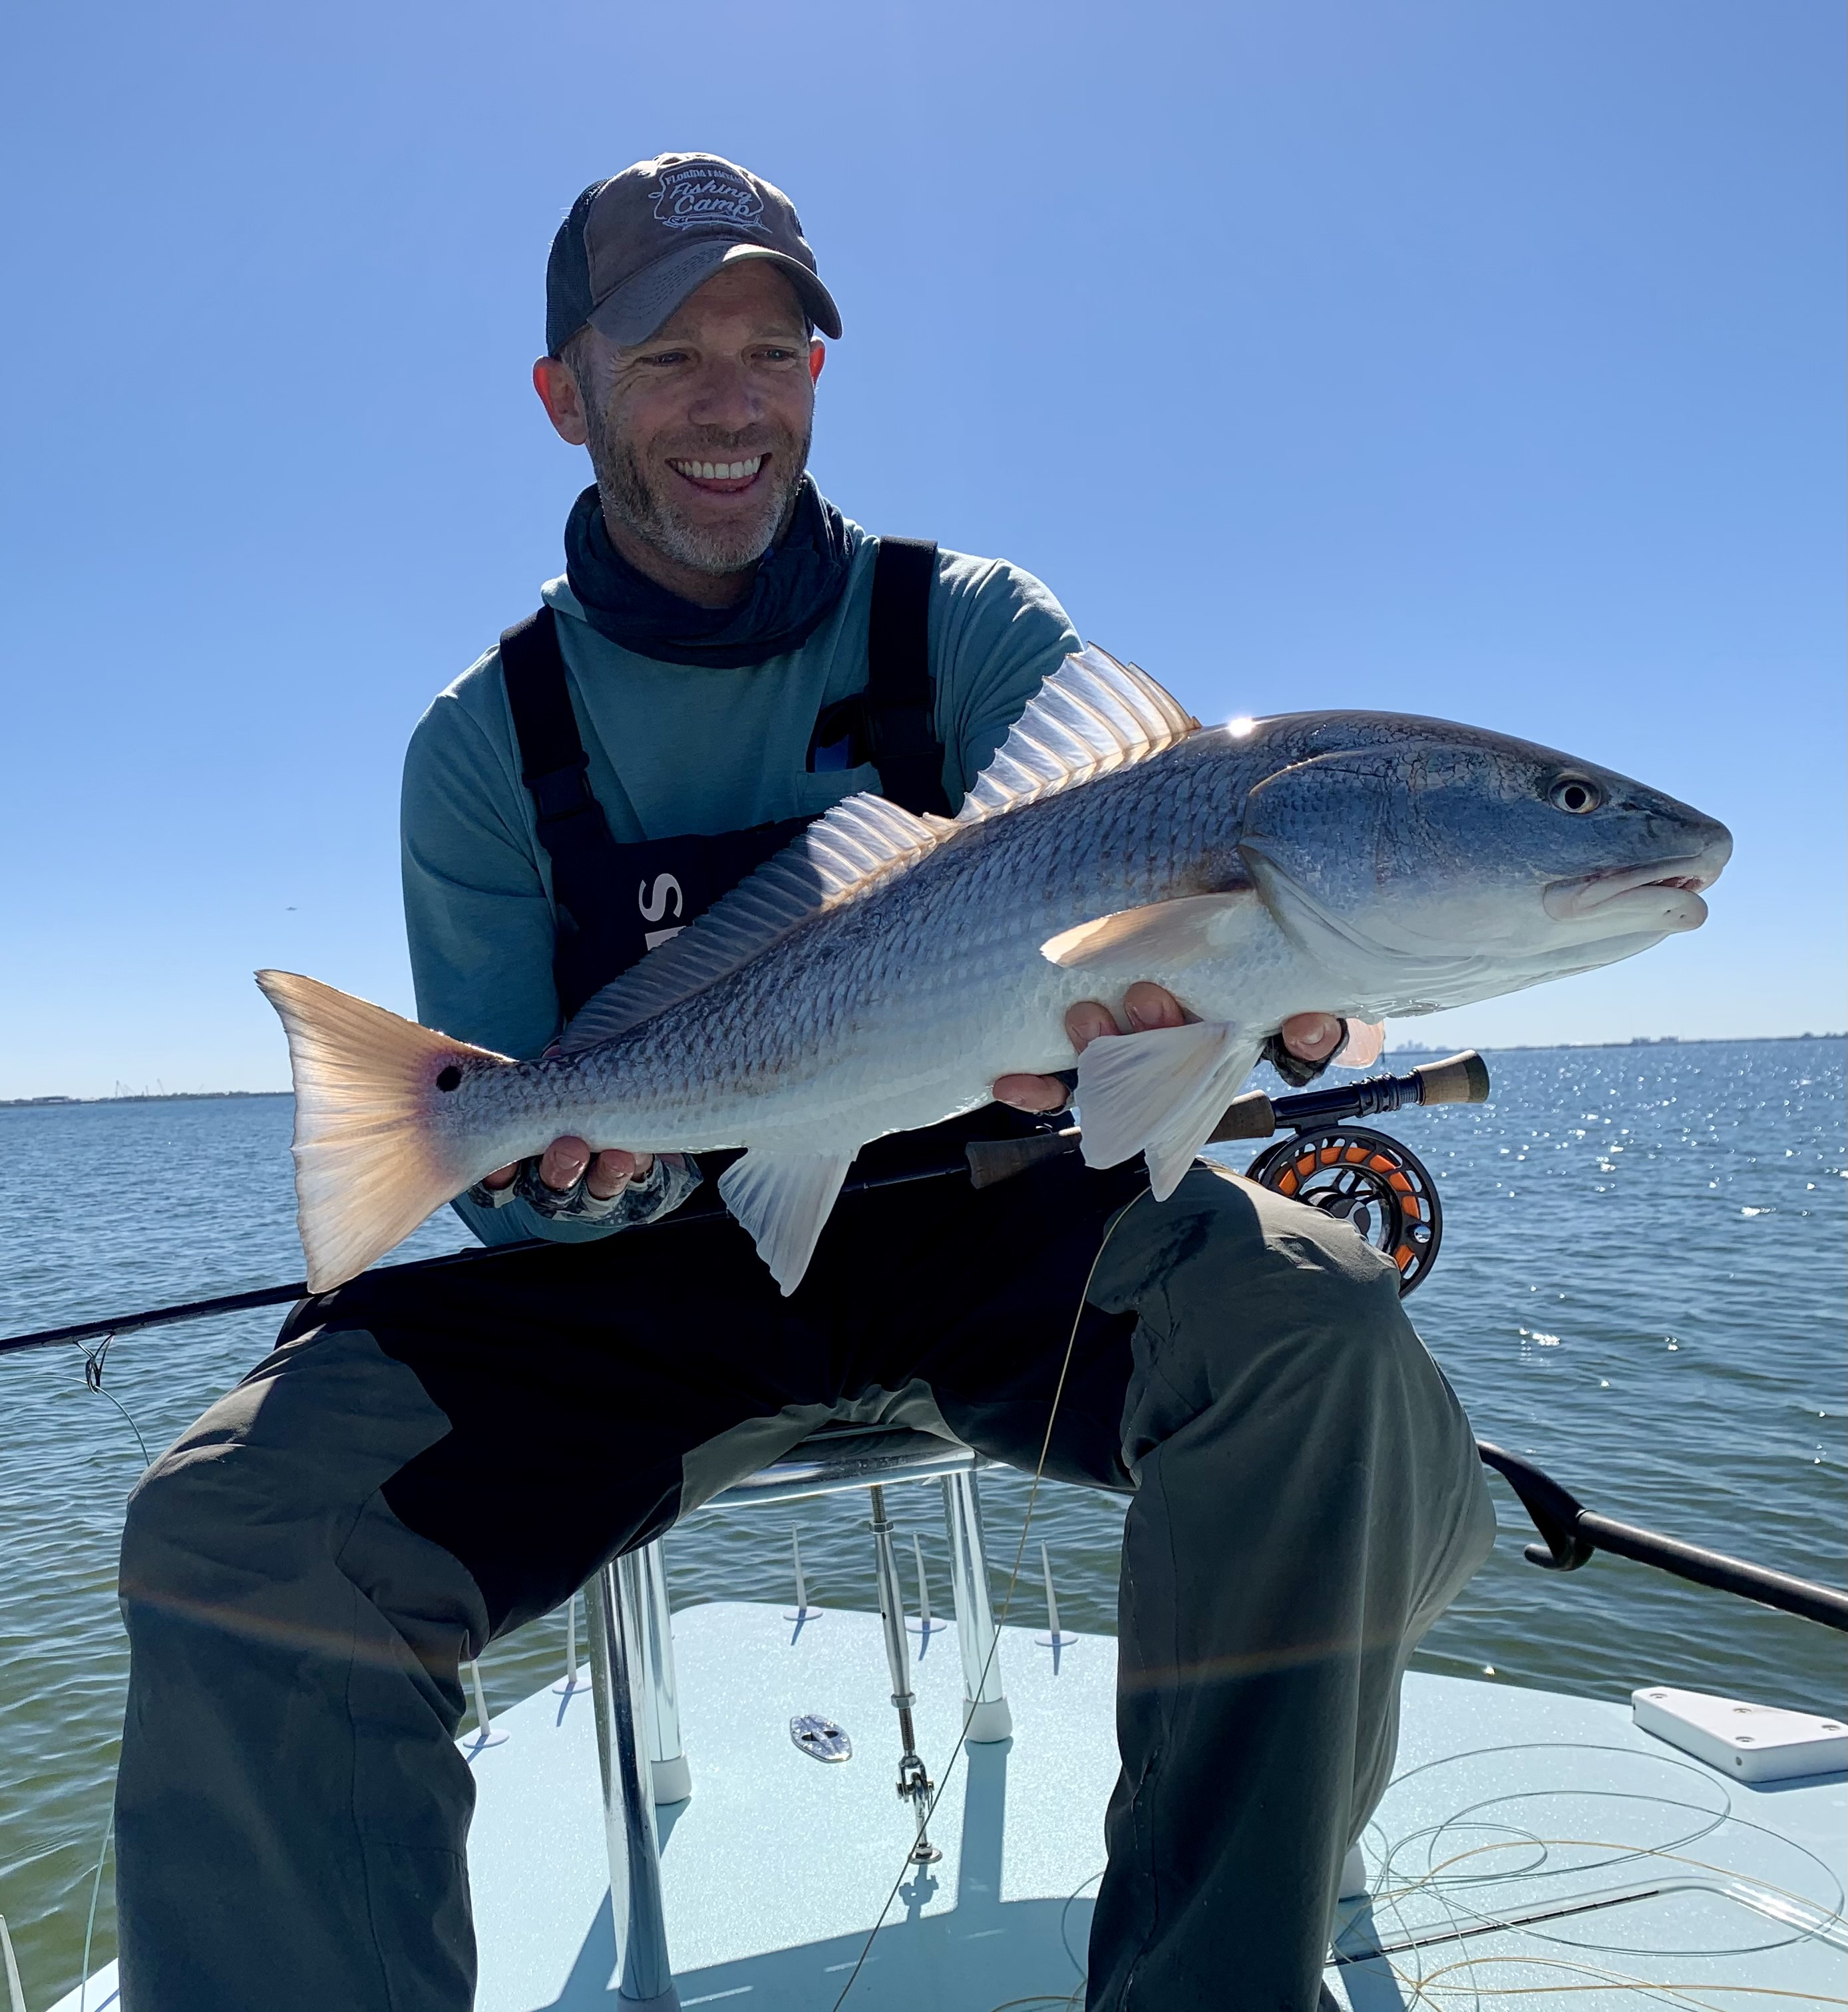 Fly Tide Charters